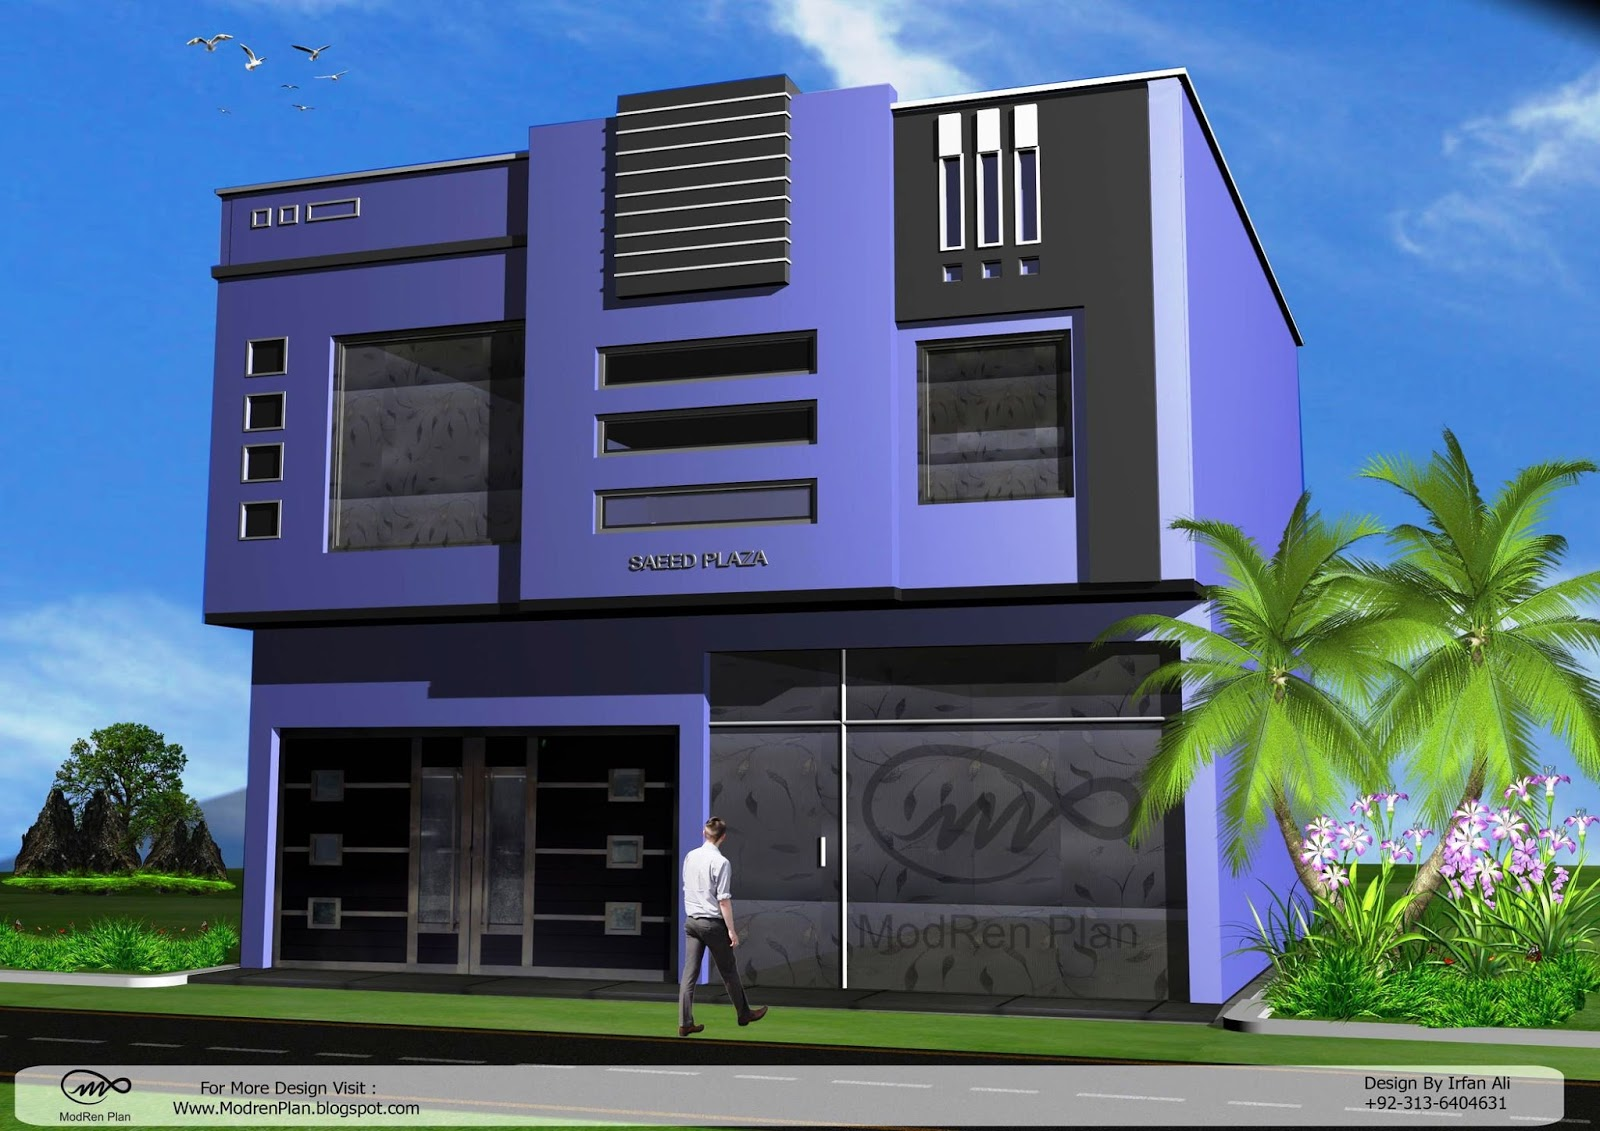 Modern Commercial Building Designs And Plaza Front Elevation